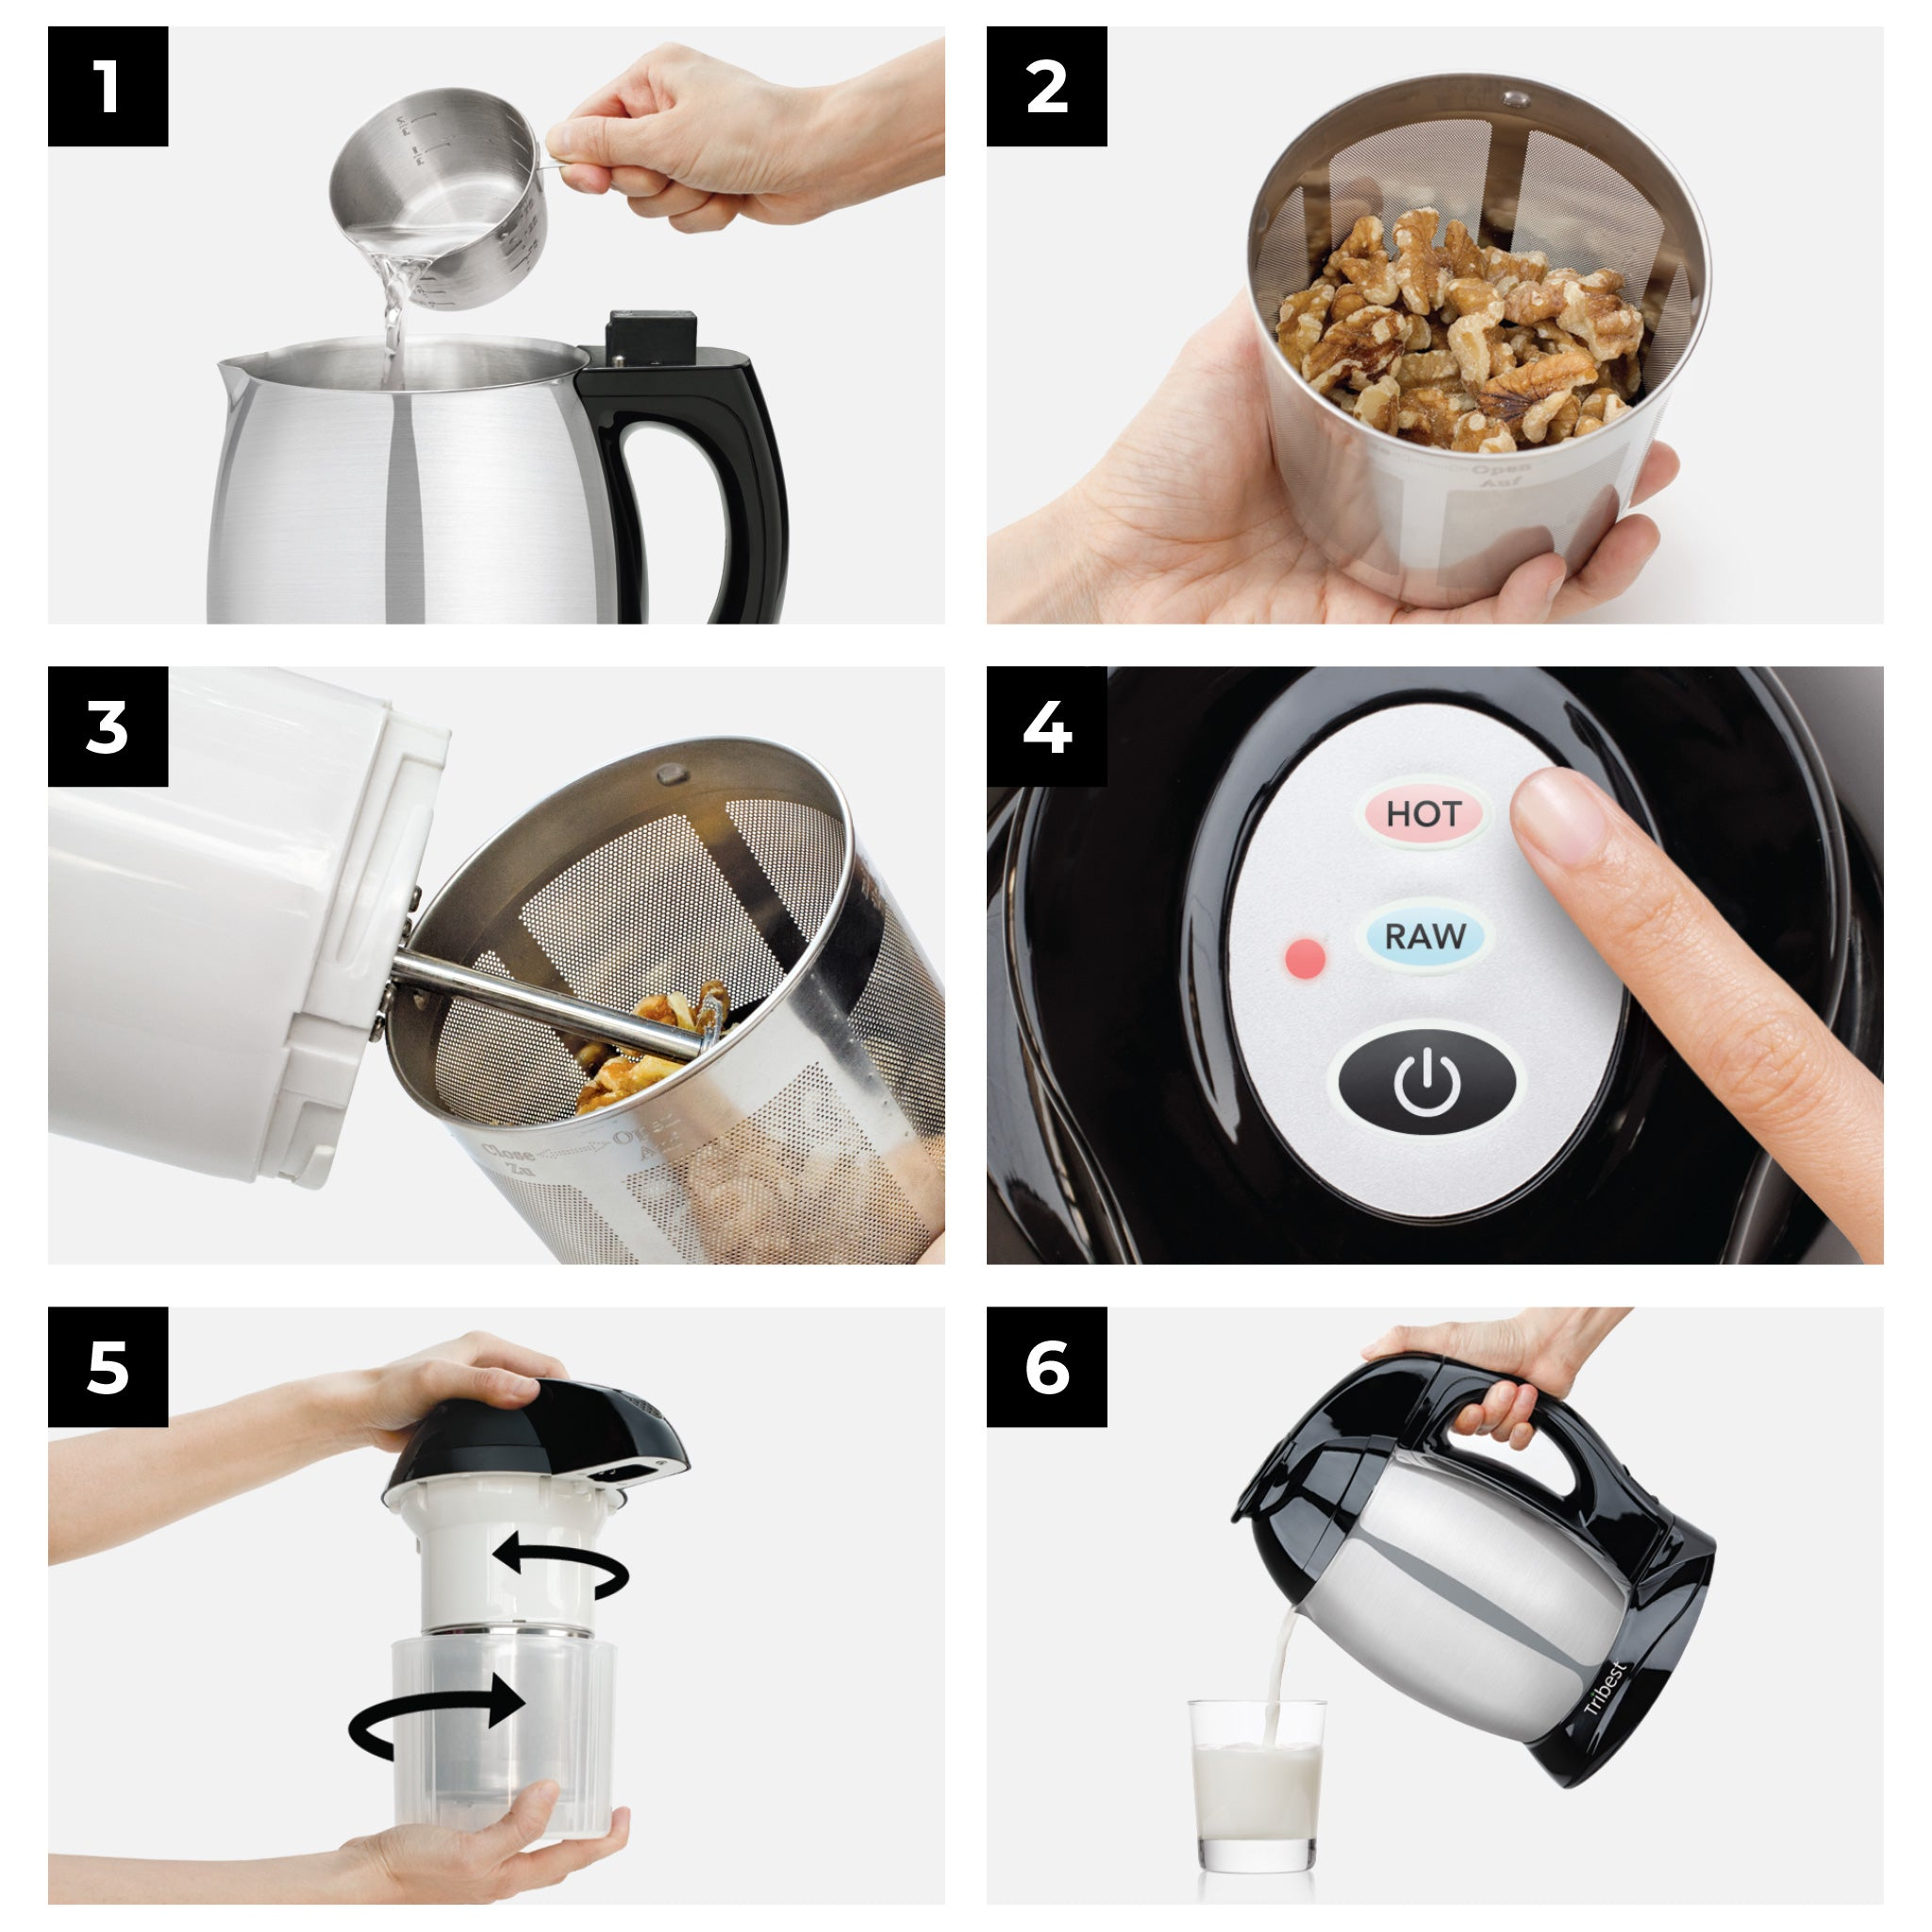 Soyabella® Automatic Nut & Seed Milk Maker with Tofu Kit in Black SB-132-B - Tribest